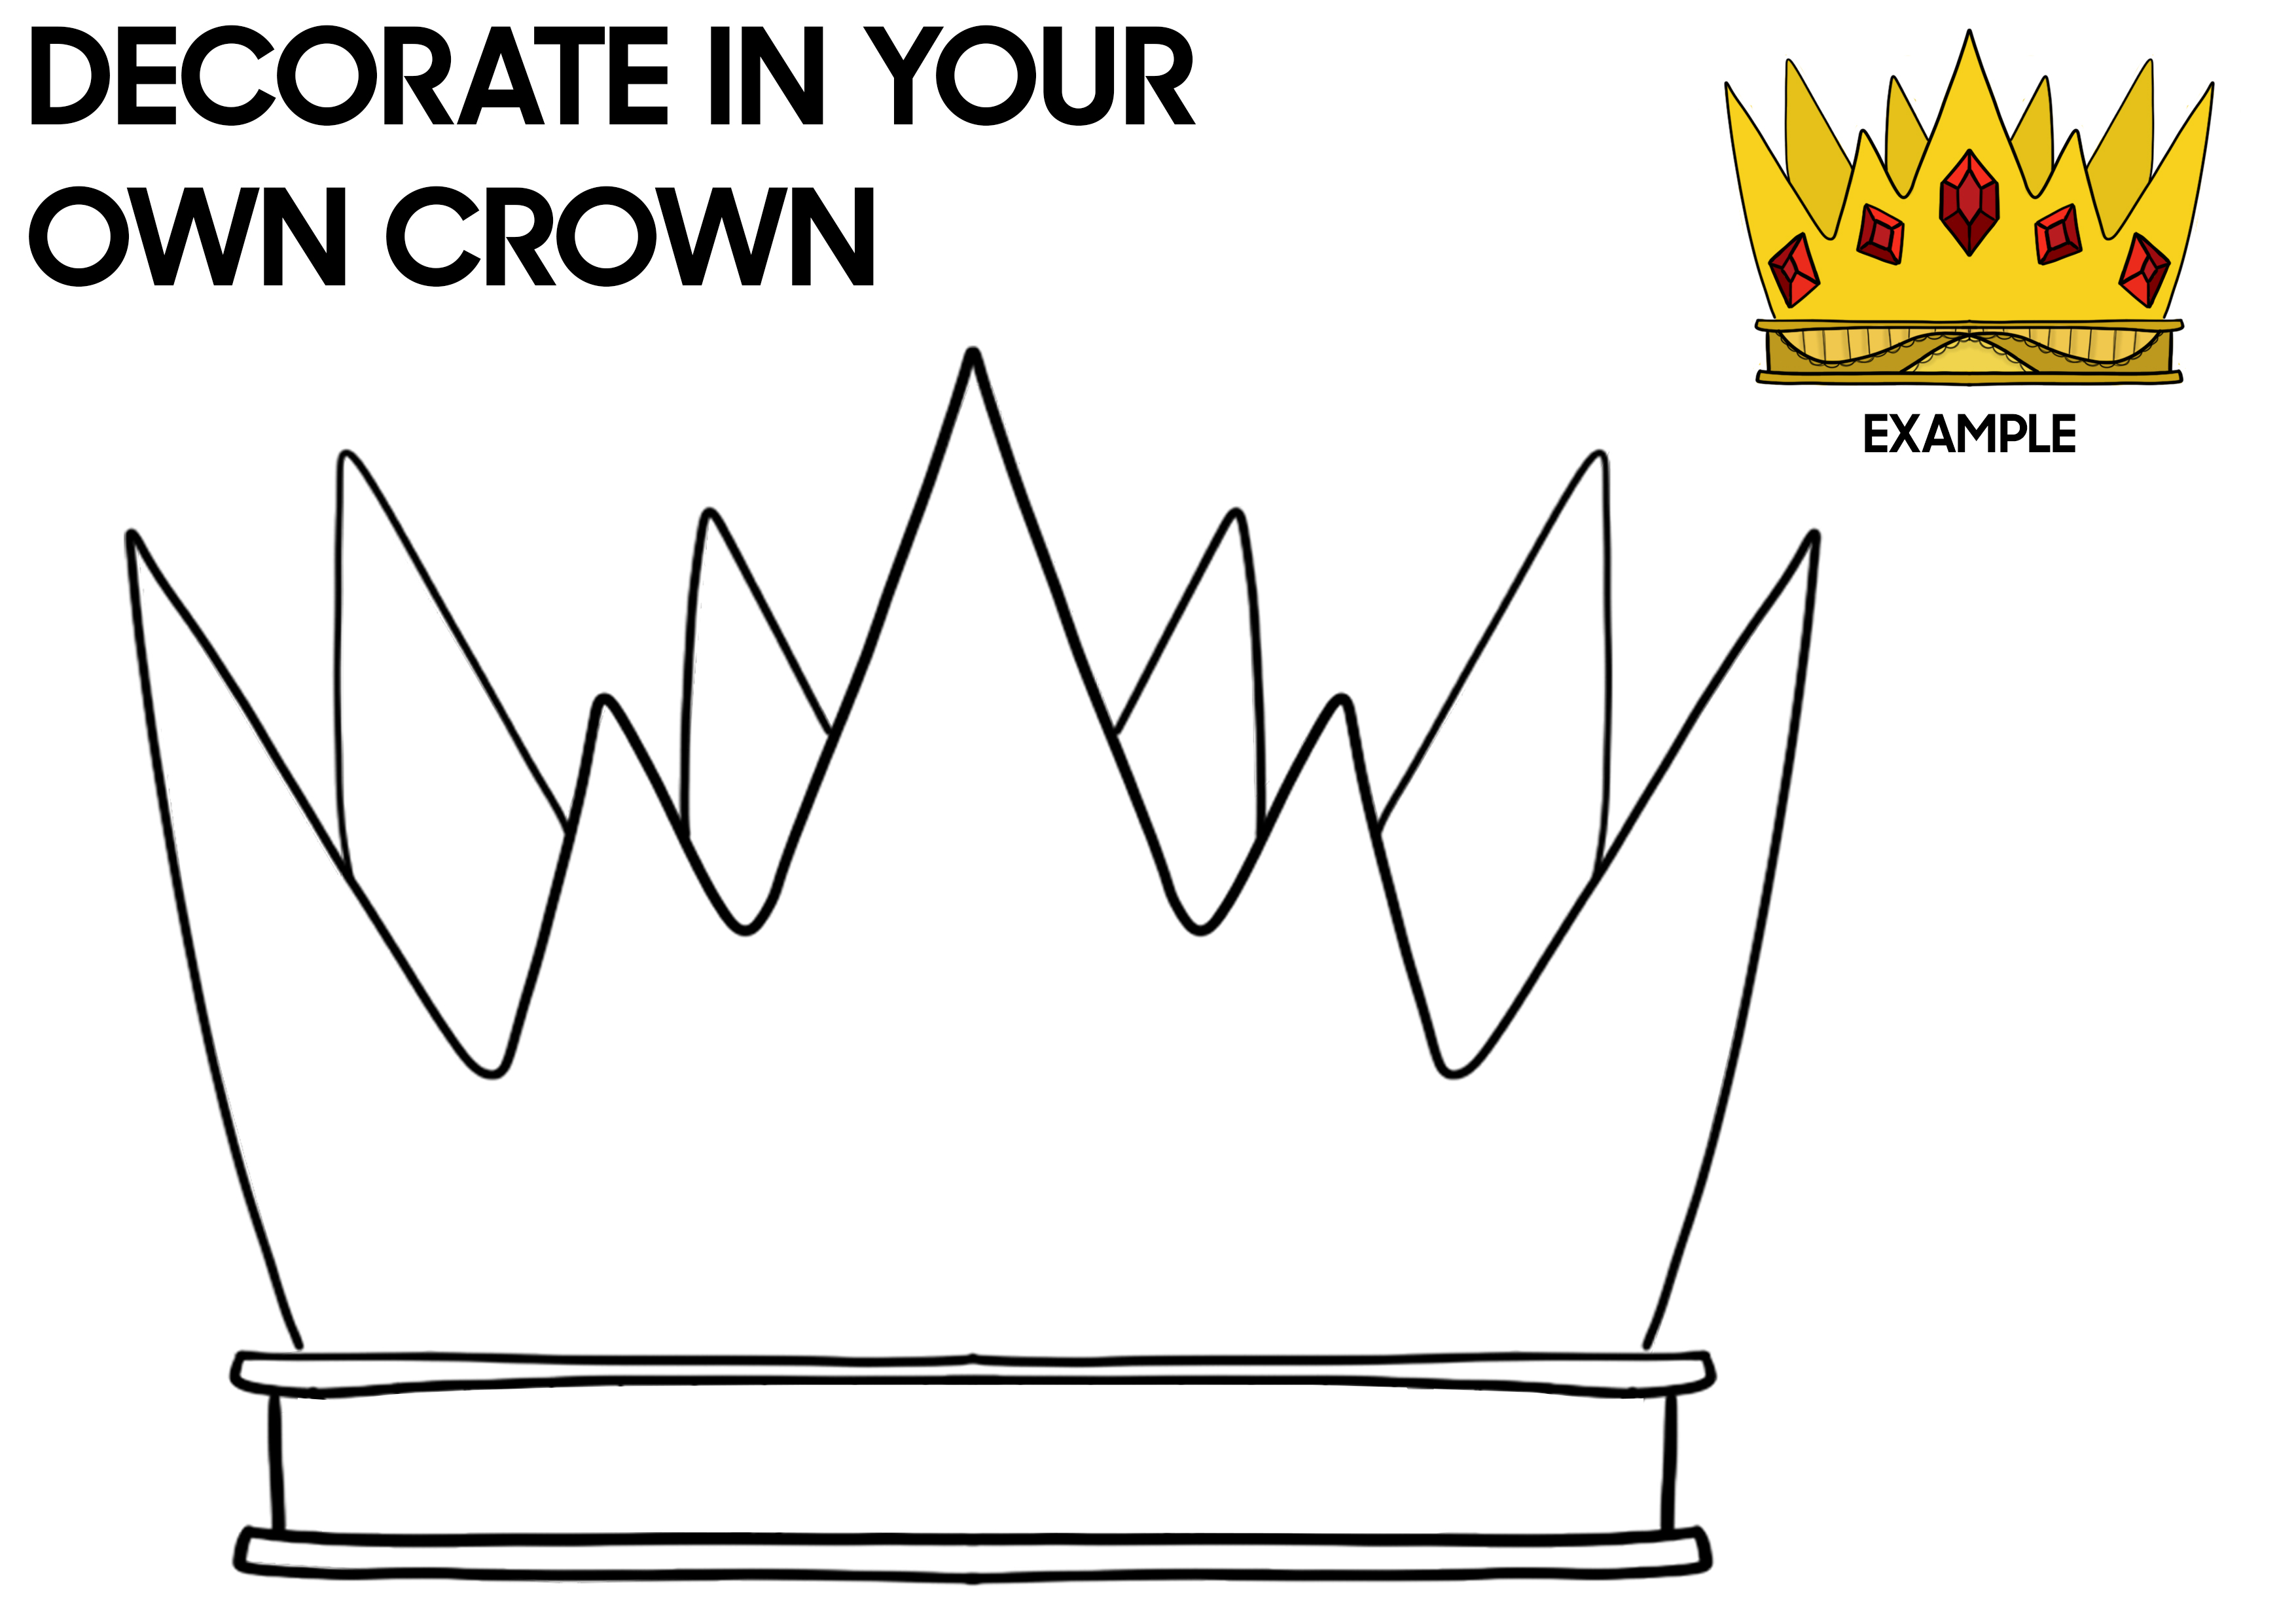 Decorate your own festival crown